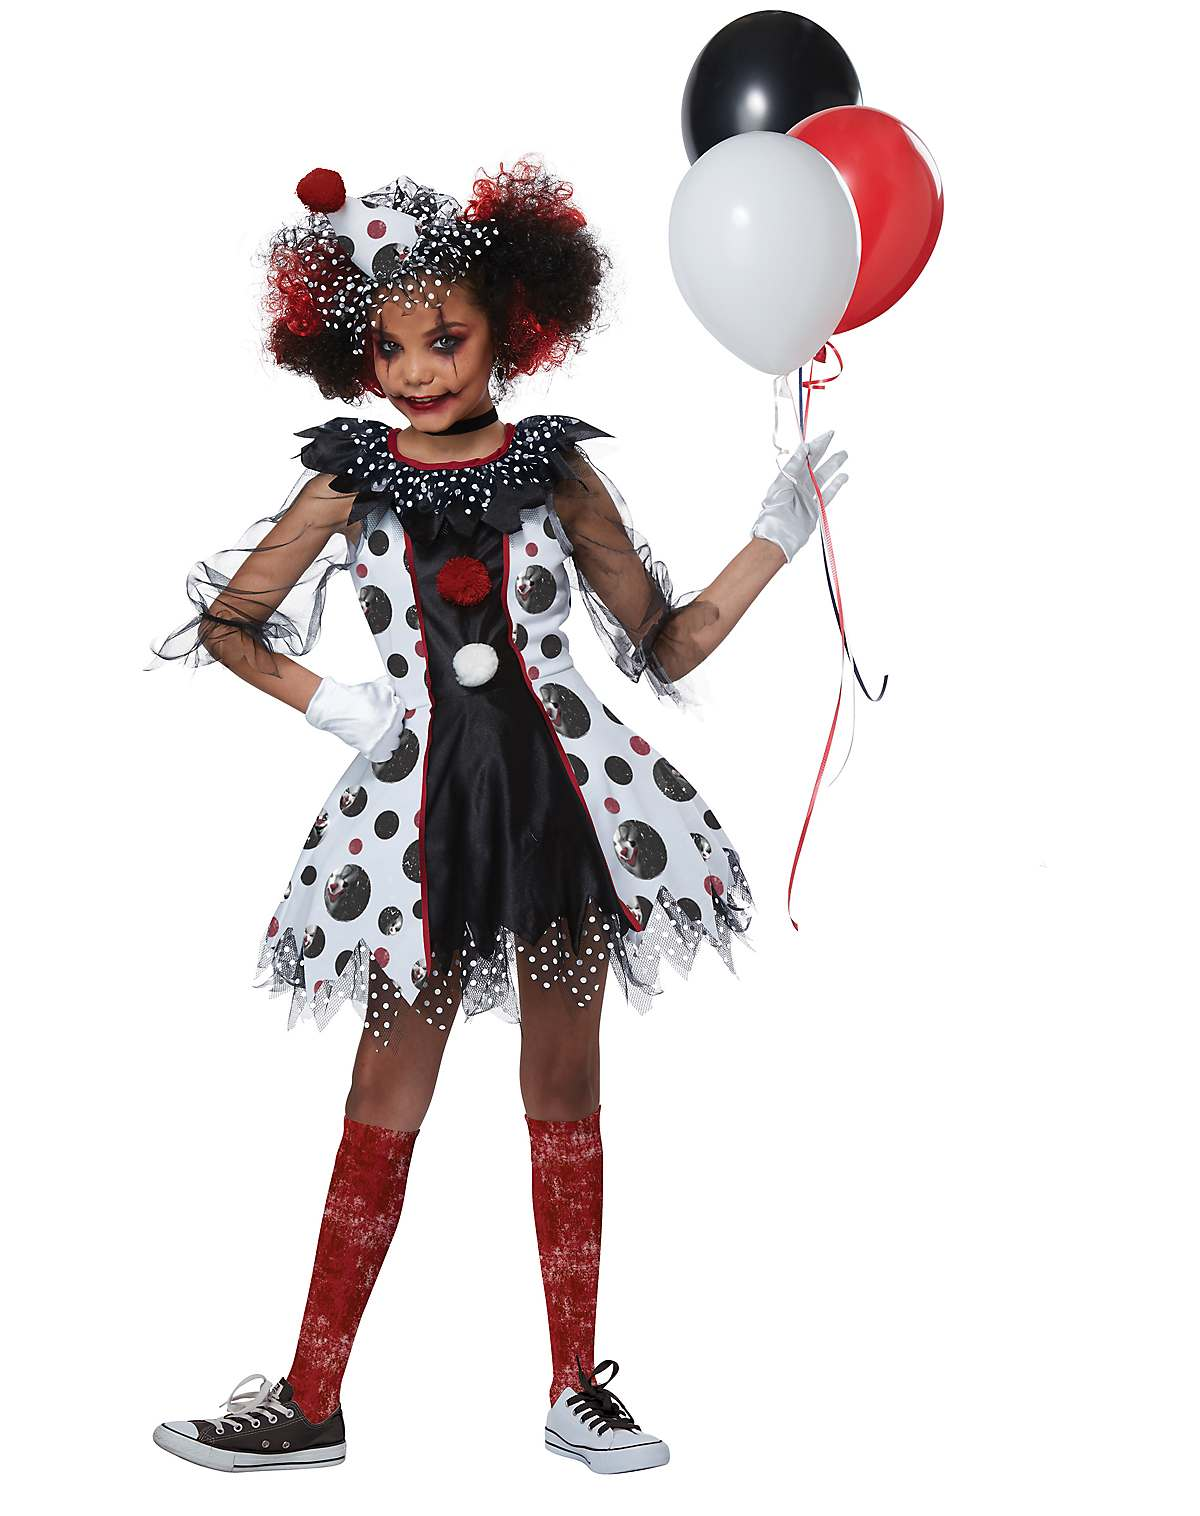 Kids Clown Costumes for Halloween